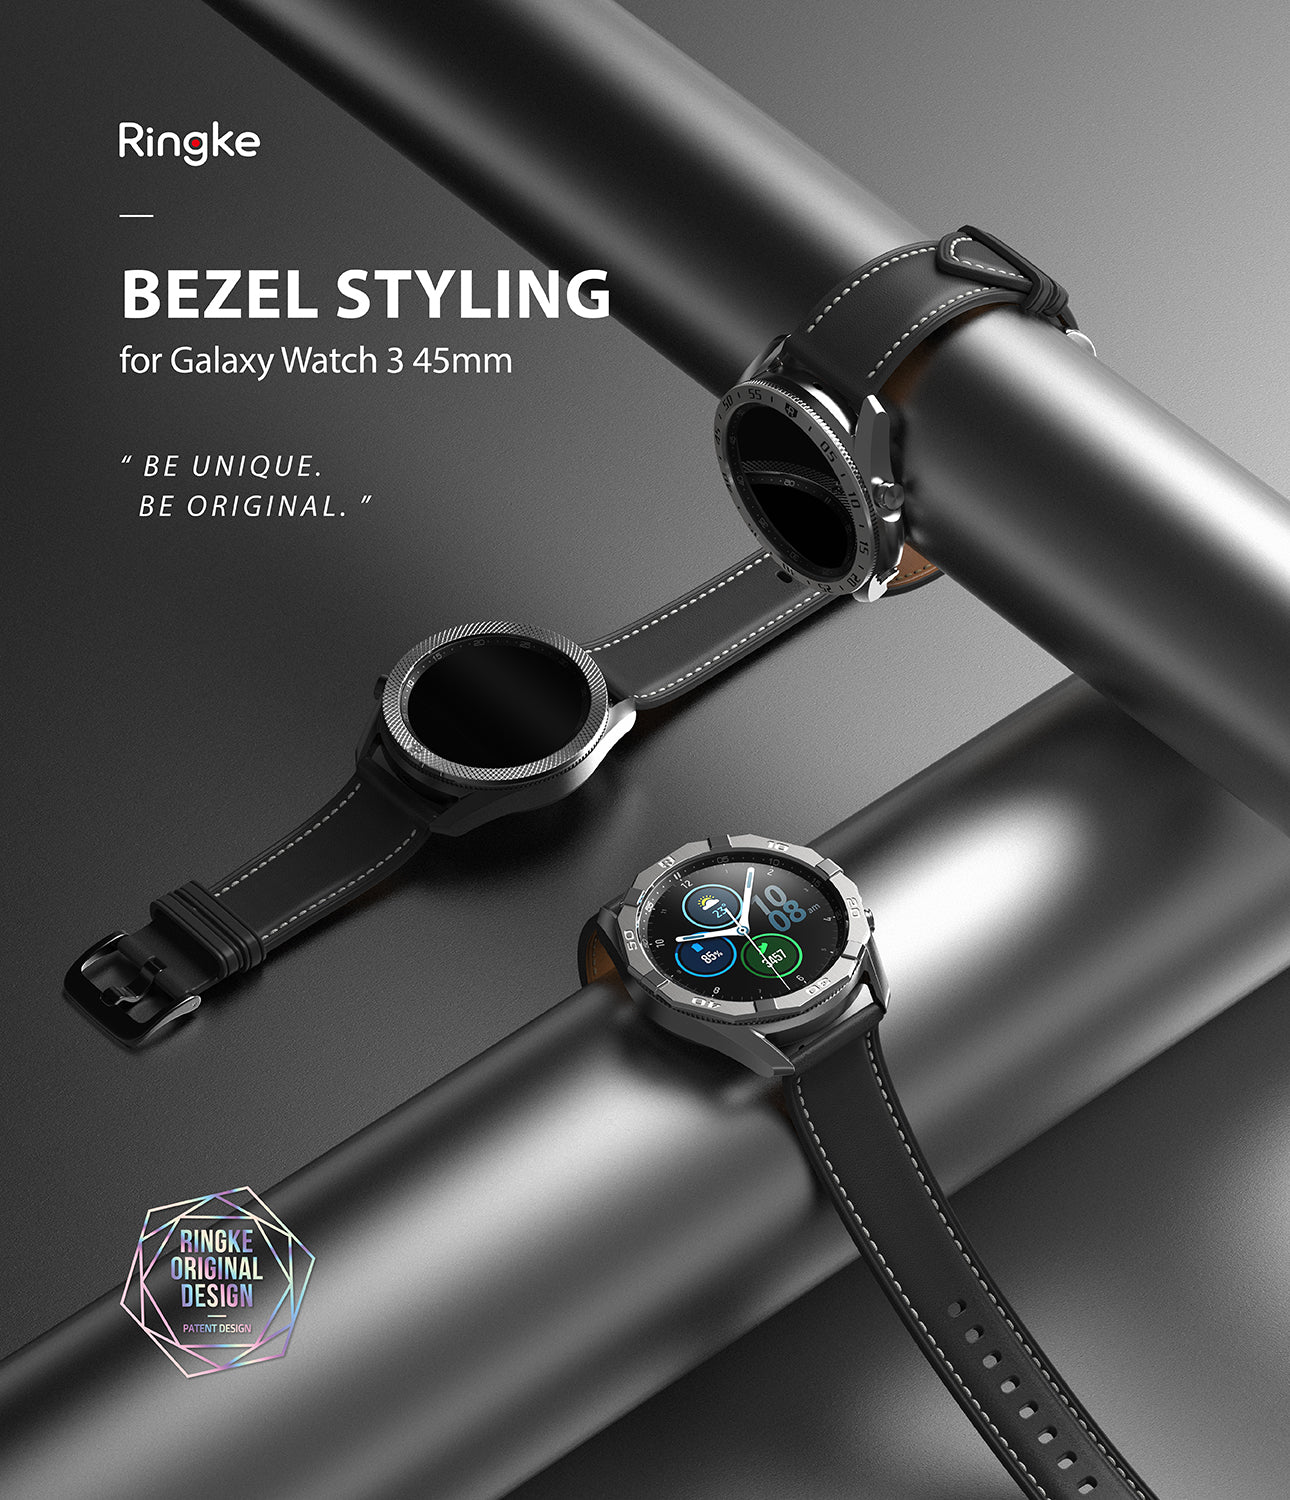 ringke bezel styling for galaxy watch 3 45mm